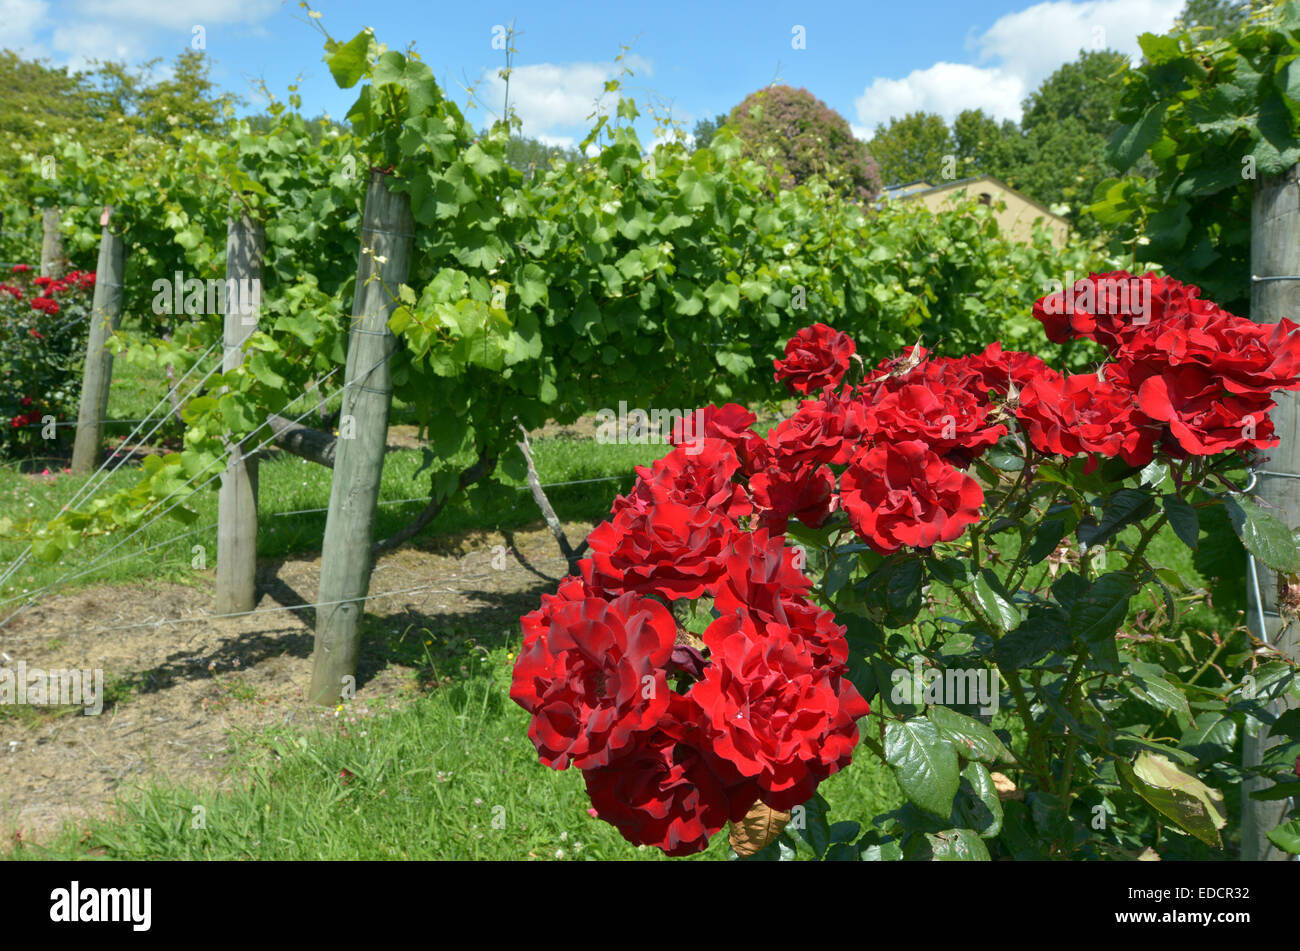 roses and vineyard stockfotos roses and vineyard bilder. Black Bedroom Furniture Sets. Home Design Ideas